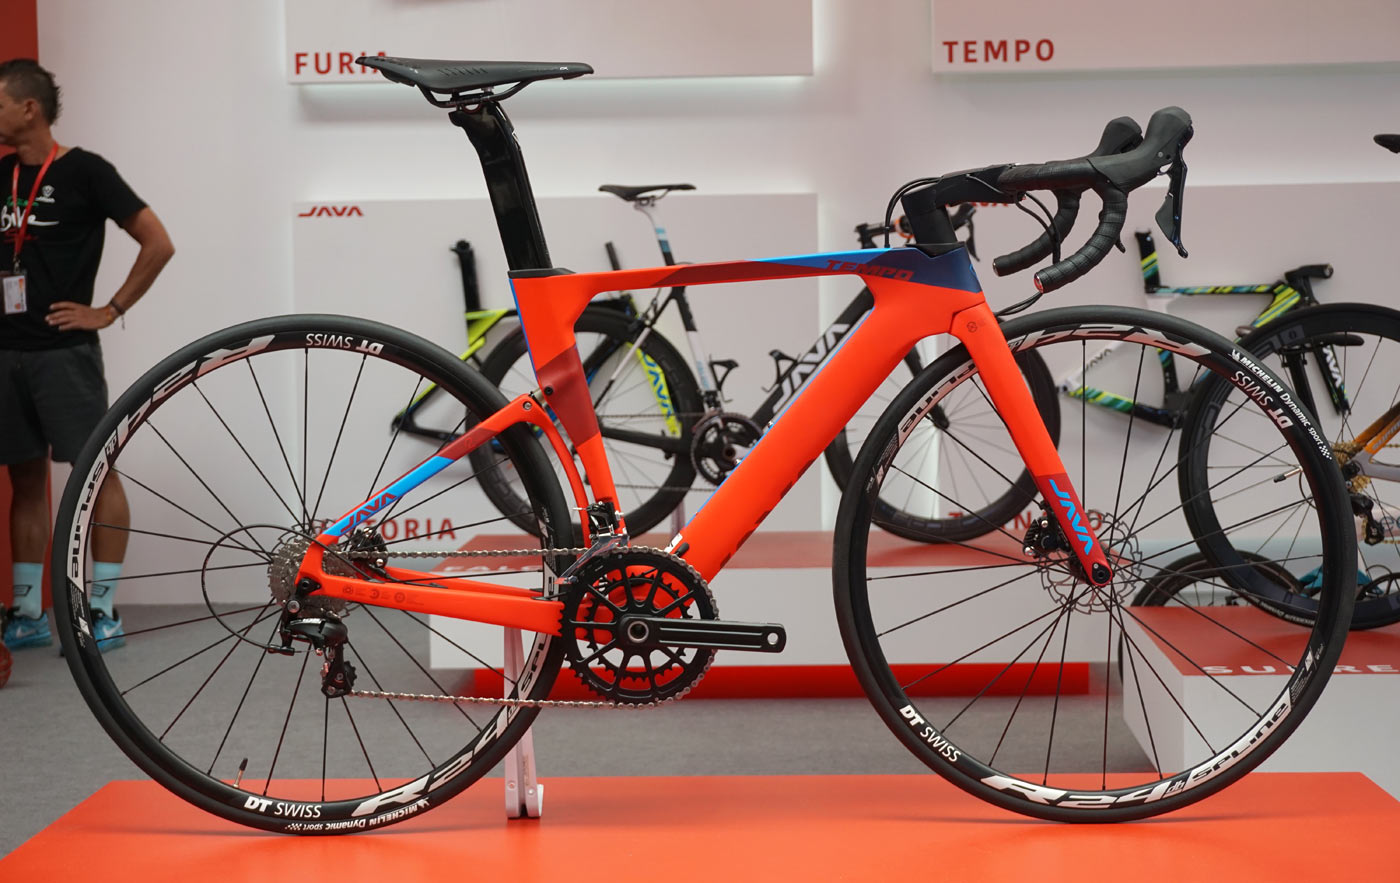 Java Tempo full suspension short travel road bike with aerodynamic stem hides the cables